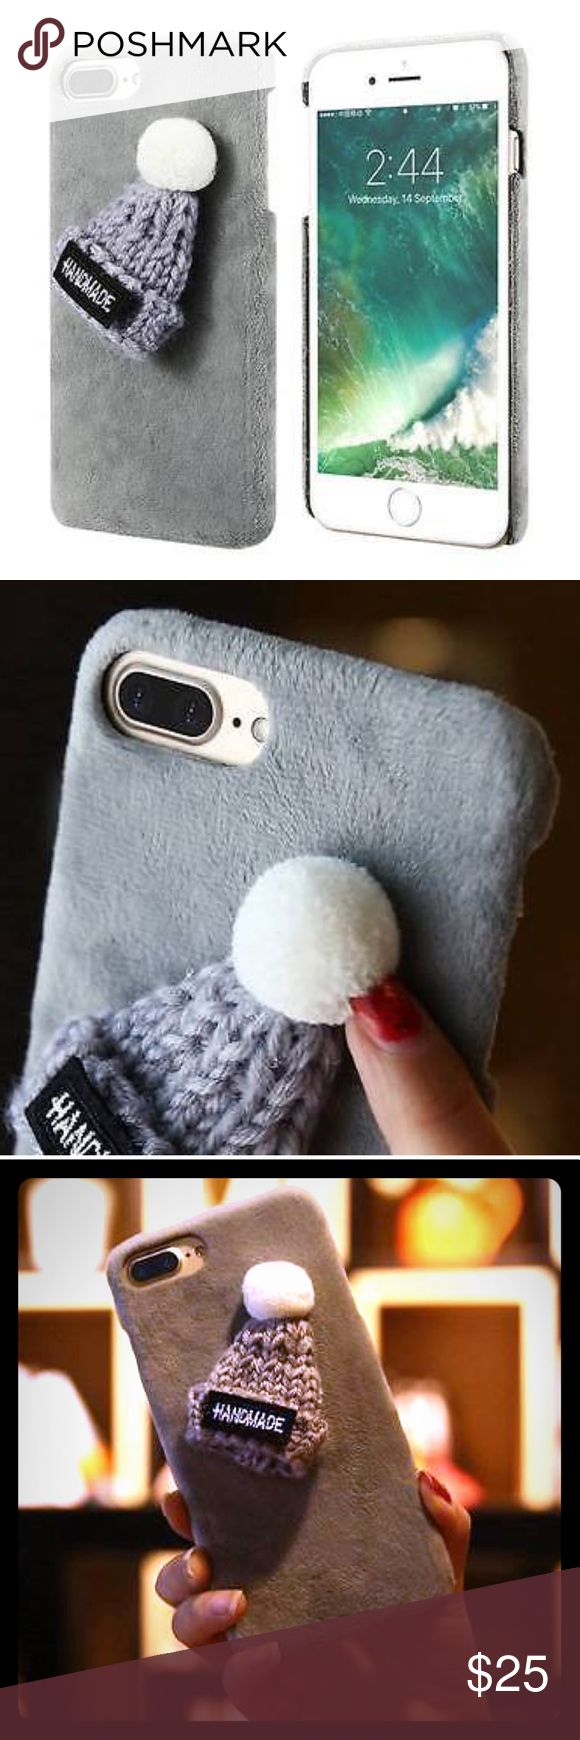 🎉HOST PICK 10/21🎉 Adorable Beanie Case iPhone 7+ 😍 Super-super cute plush case, with knitted beanie finger warmer/ case holder. No words for how dang cute this case is! Opened buttons and ports access for easy usage 👍🏼 fall and winter season is right around the corner, get this cutie while in stock and keep those fingers warm 😉 would make a great gift for Christmas 🎄 Other iPhone sizes and colors available, check out my other listings. New in package 😊 ** Hot New Style, Sells Out…